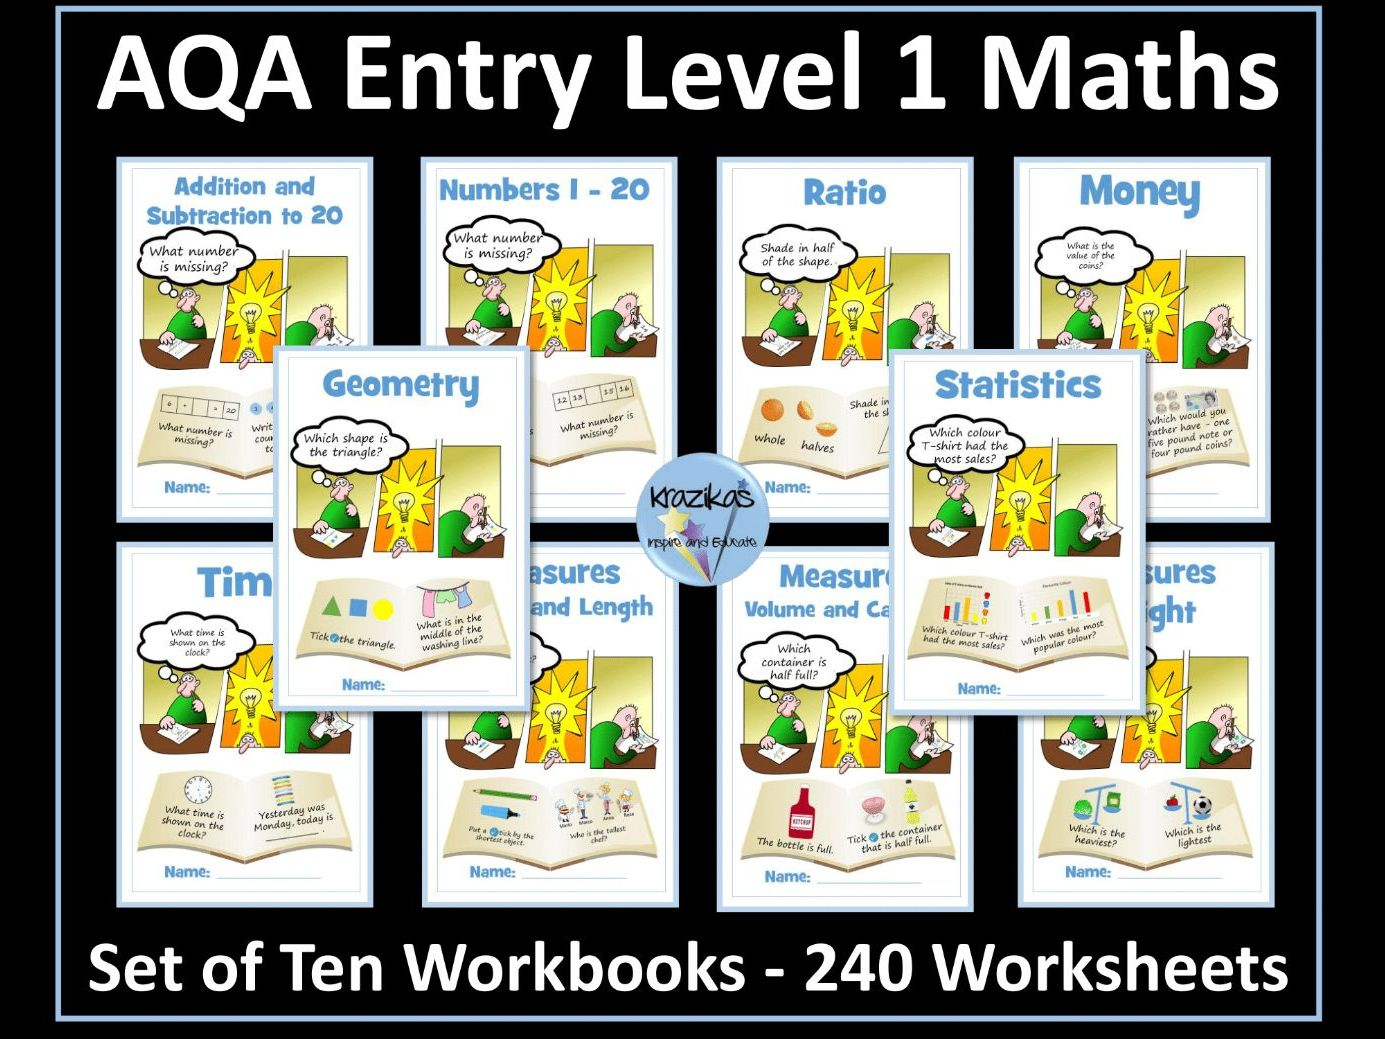 AQA Entry Level 1 Maths Bundle